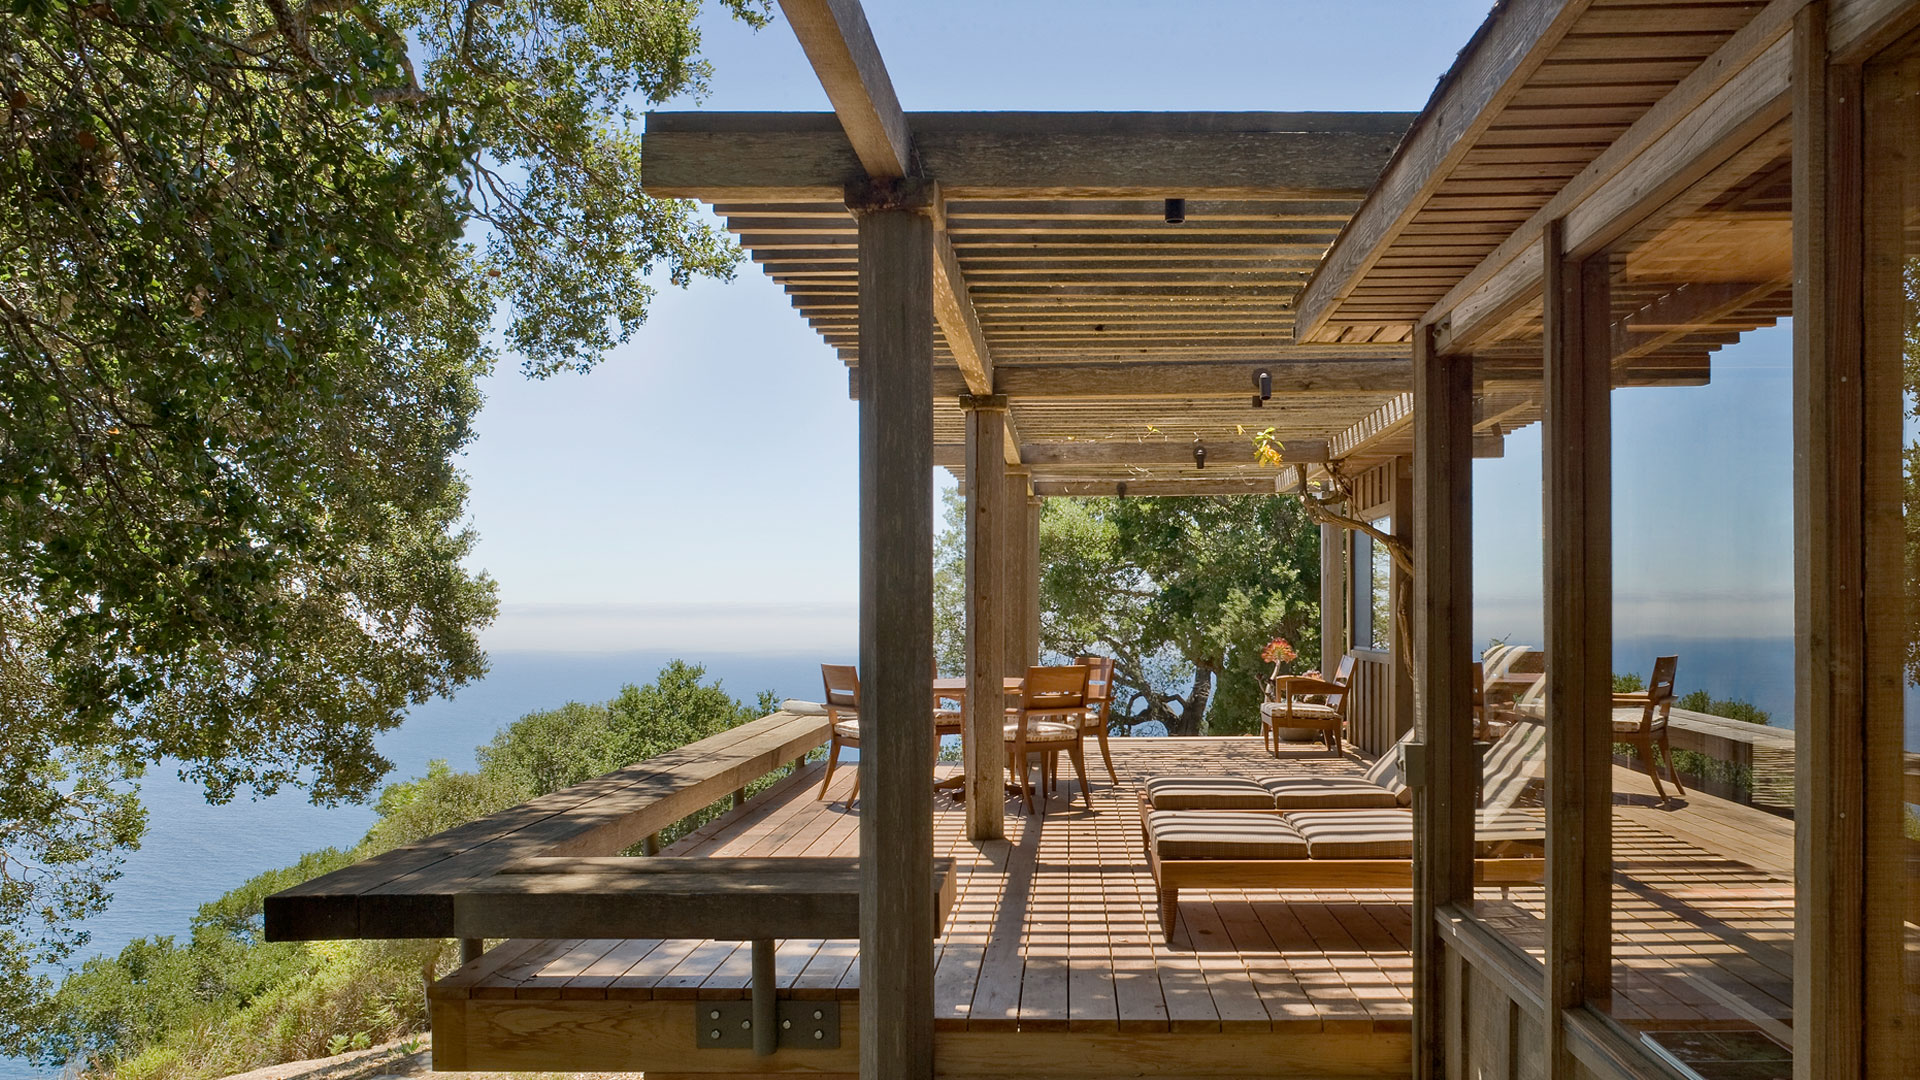 Big sur cabin studio schicketanz for Big sur cabin